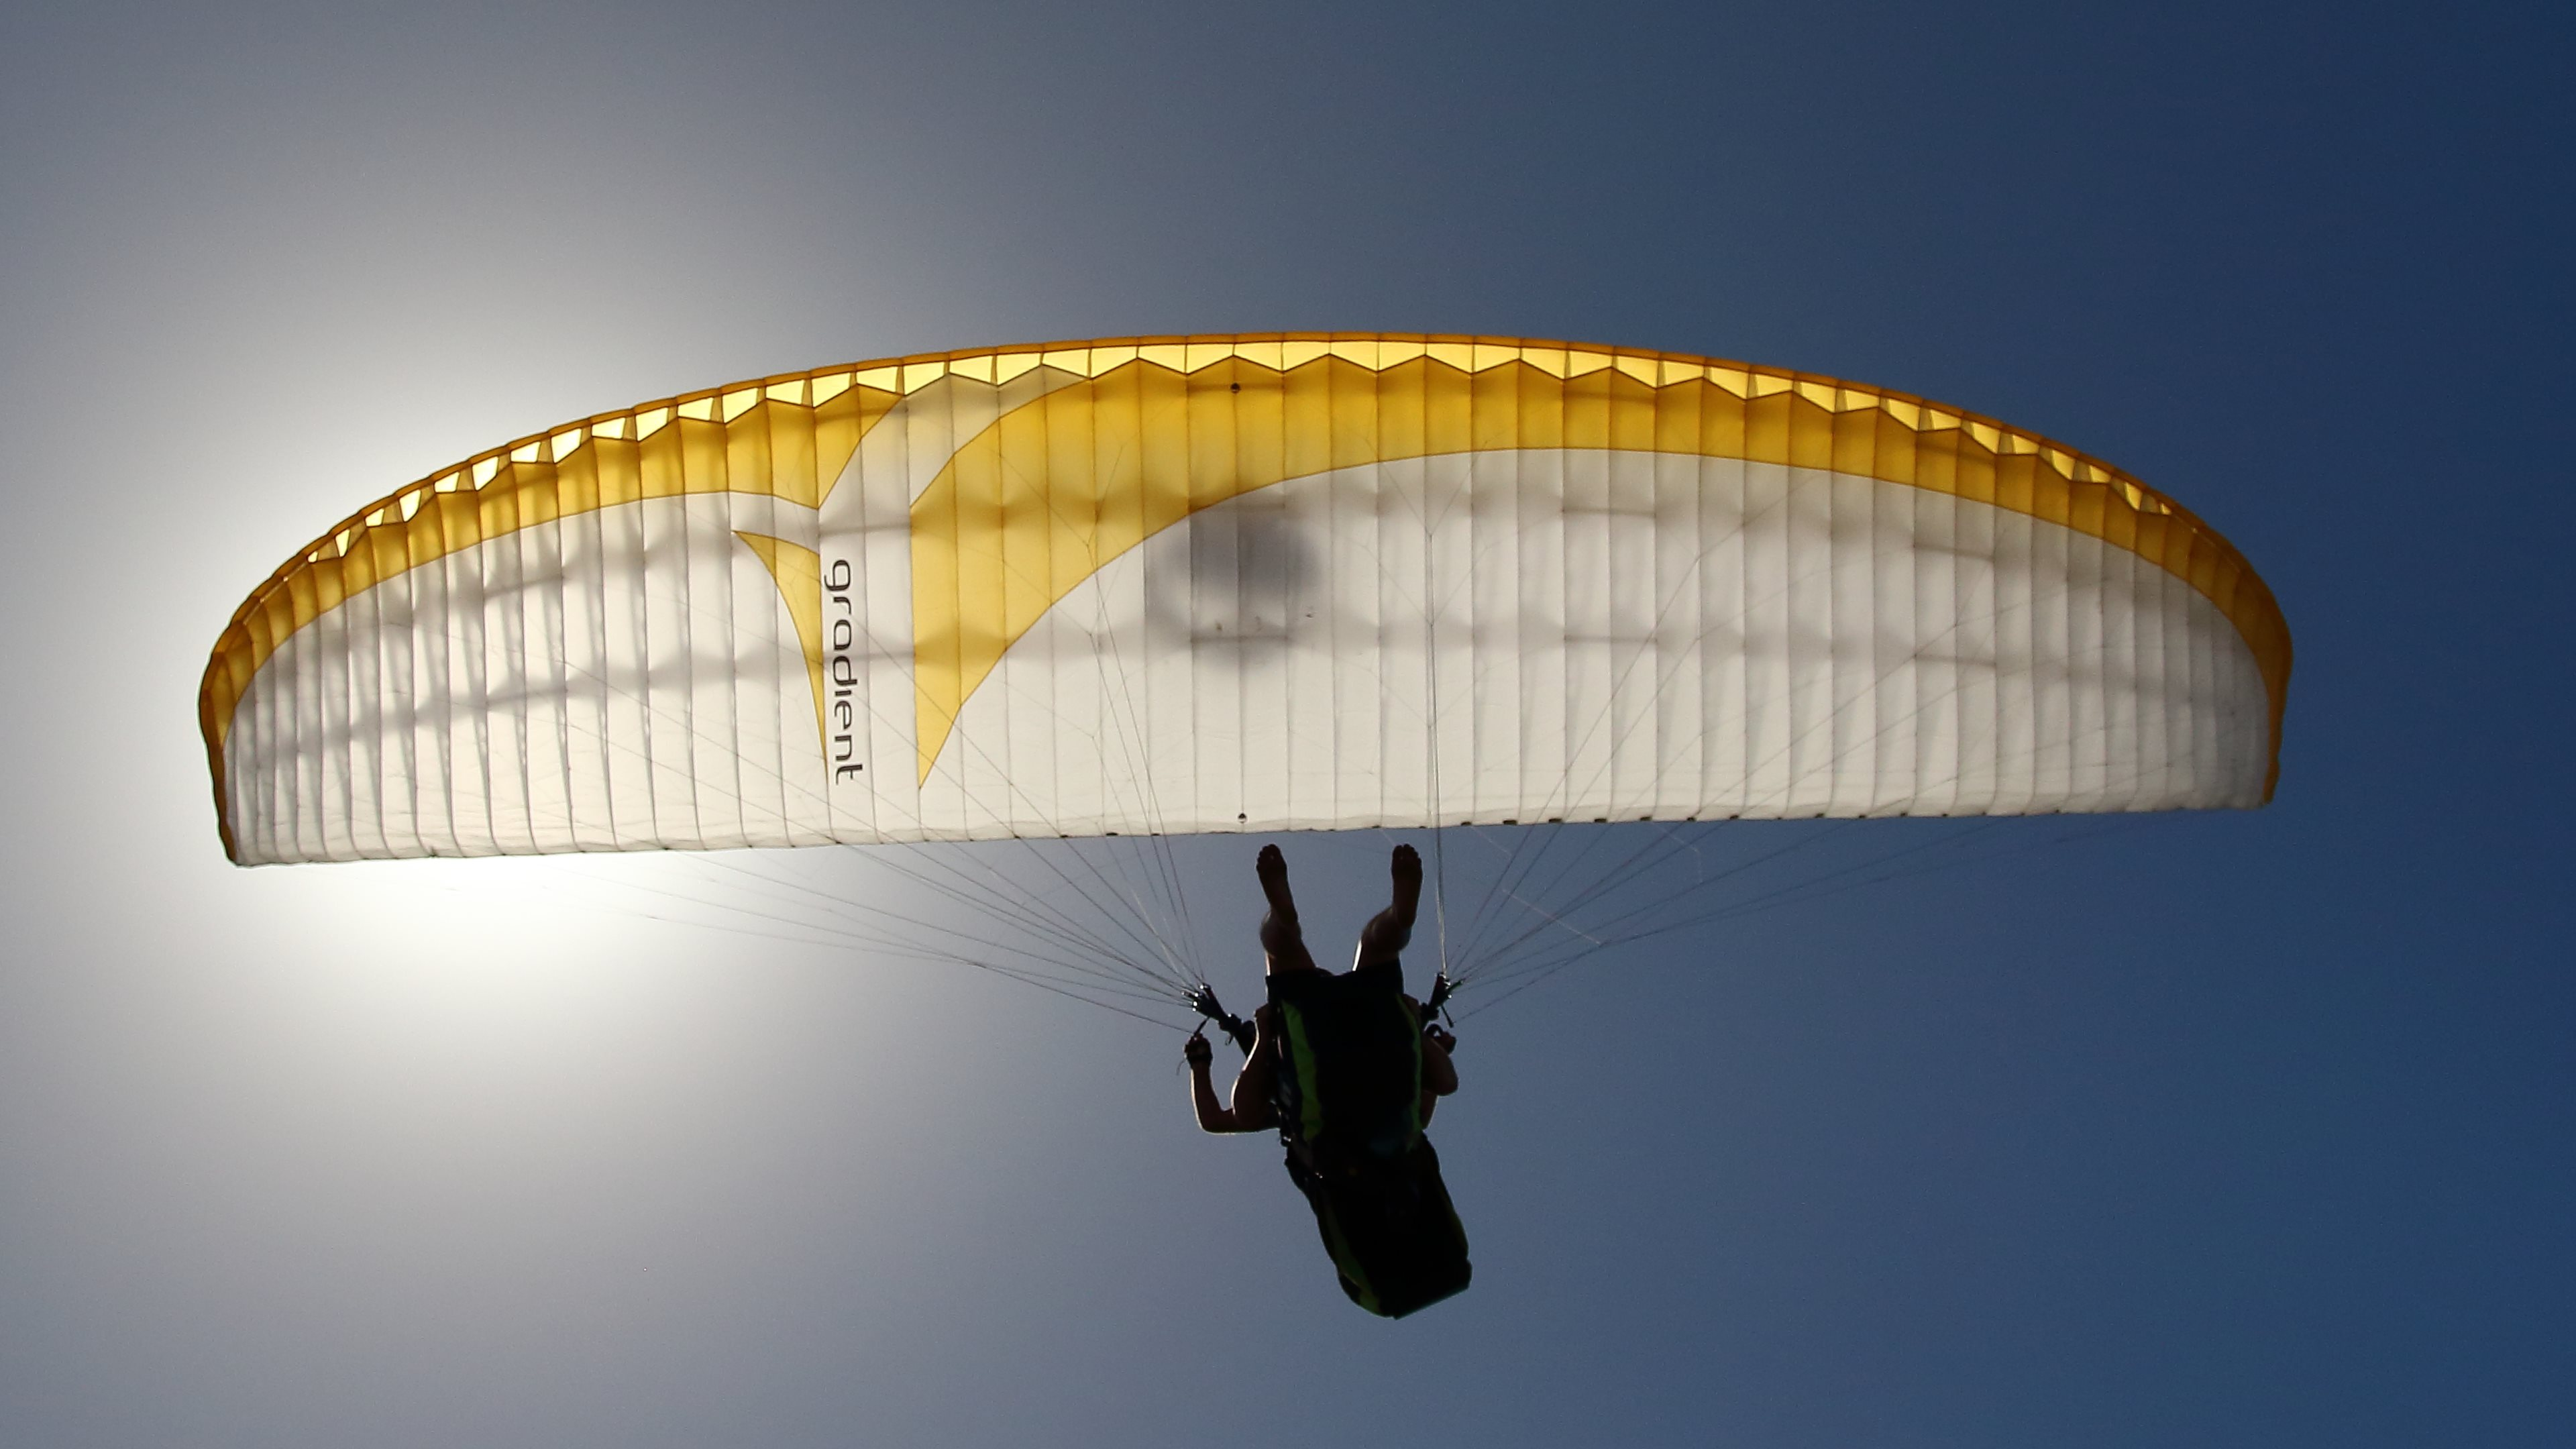 Paragliding 4k Ultra HD Wallpaper and Background Image ...